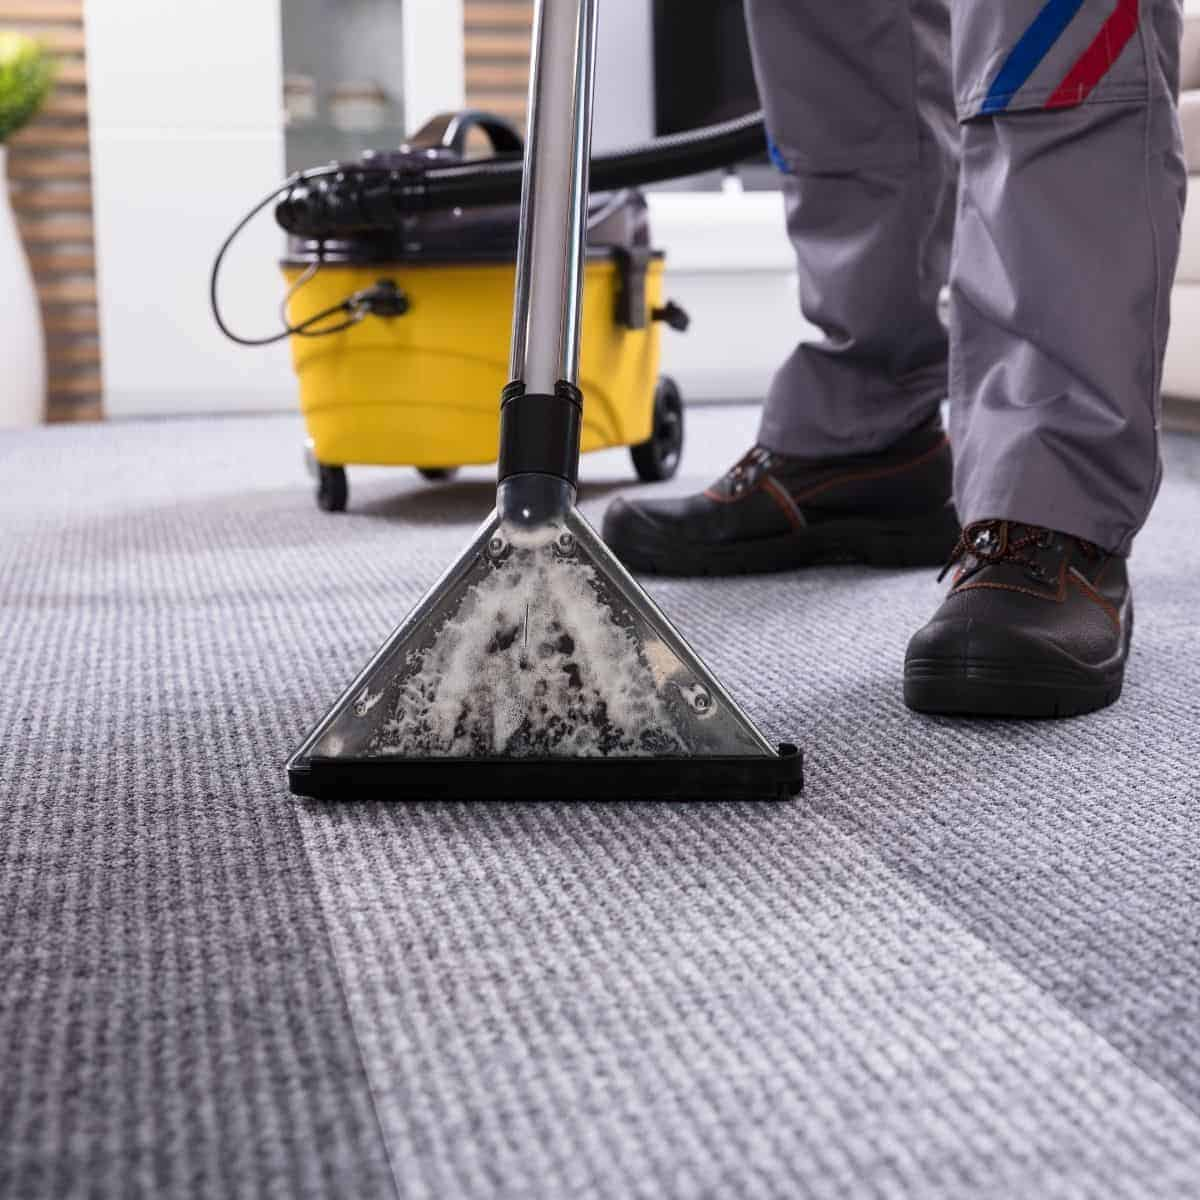 Person using a carpet cleaner.